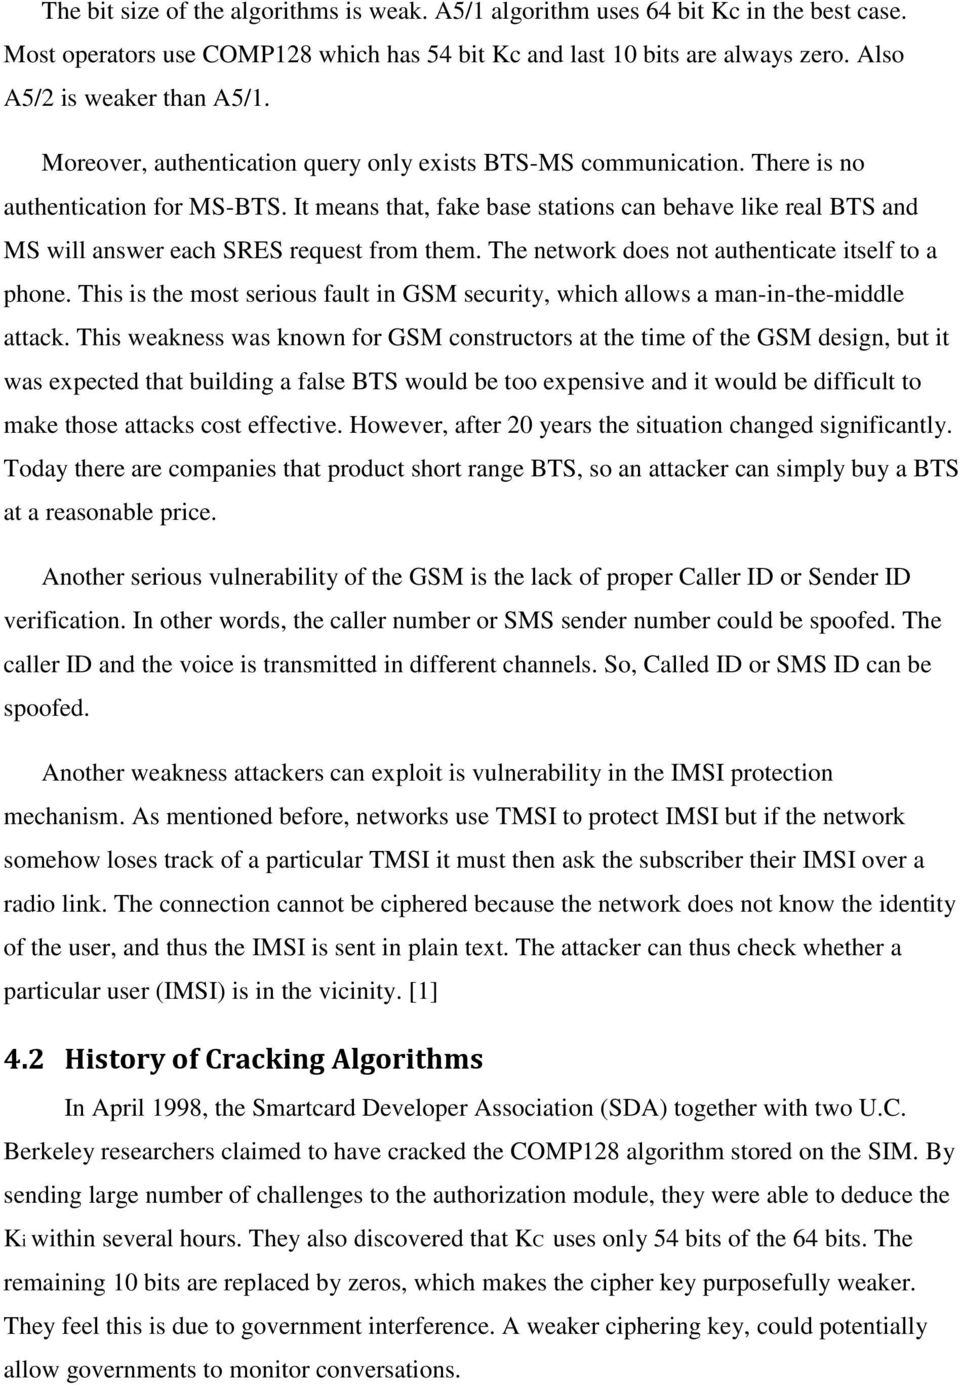 It means that, fake base stations can behave like real BTS and MS will answer each SRES request from them. The network does not authenticate itself to a phone.